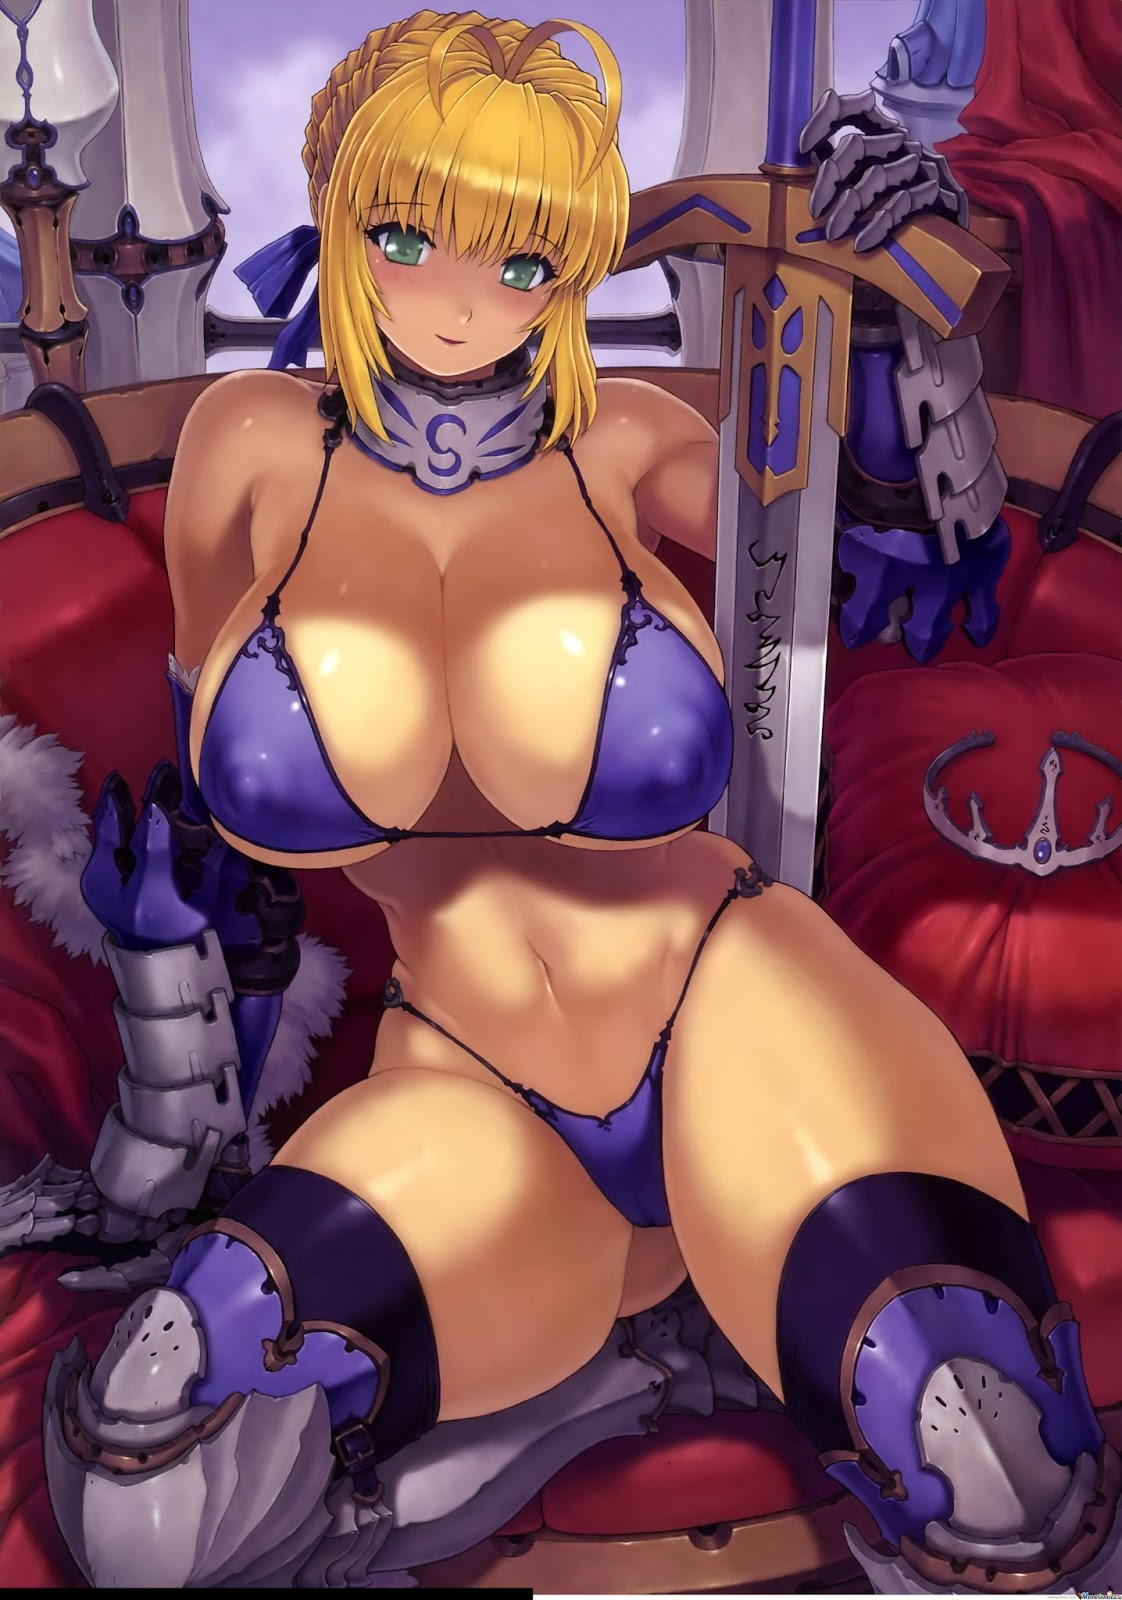 Anime warrior girls nude big tits erotic thumbs